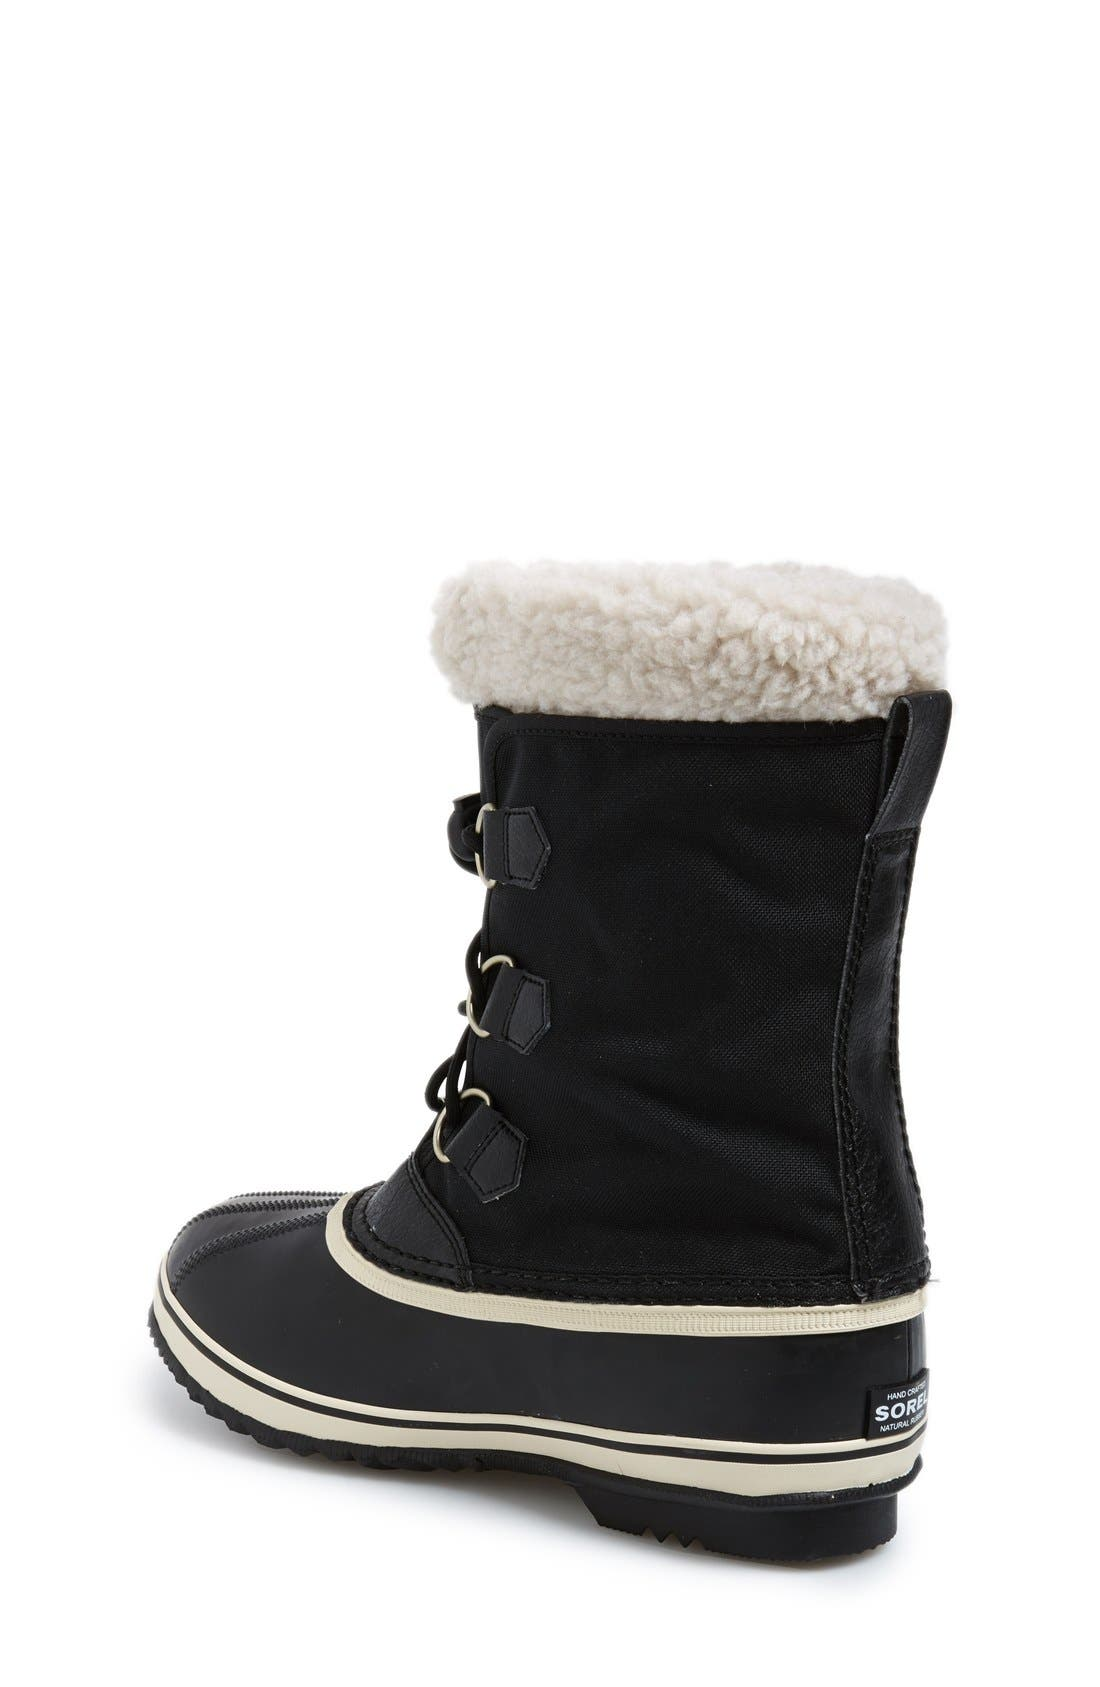 'Yoot Pac' Waterproof Snow Boot,                             Alternate thumbnail 2, color,                             Black